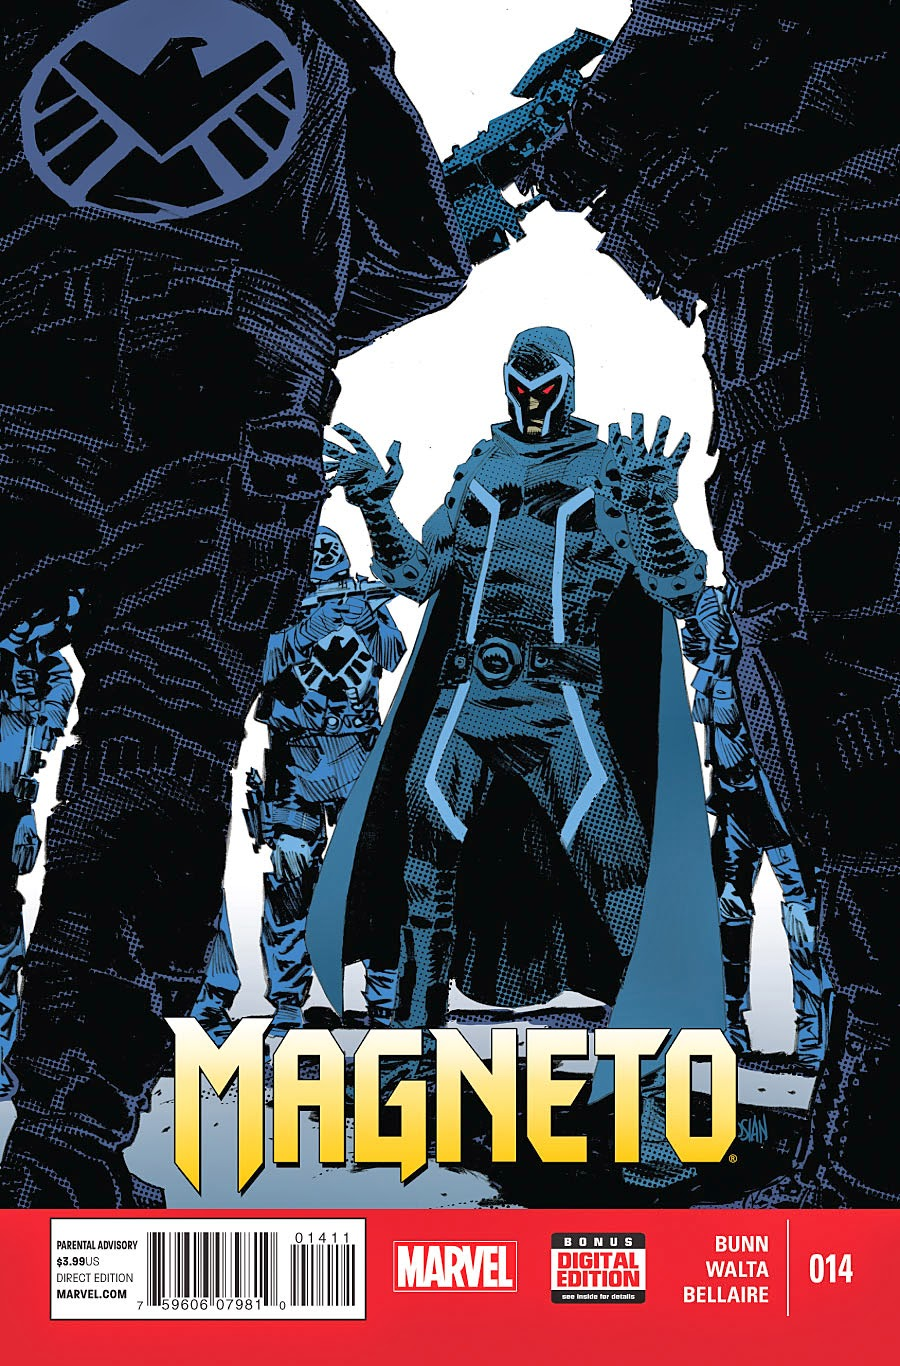 Magneto and S.H.I.E.L.D face off